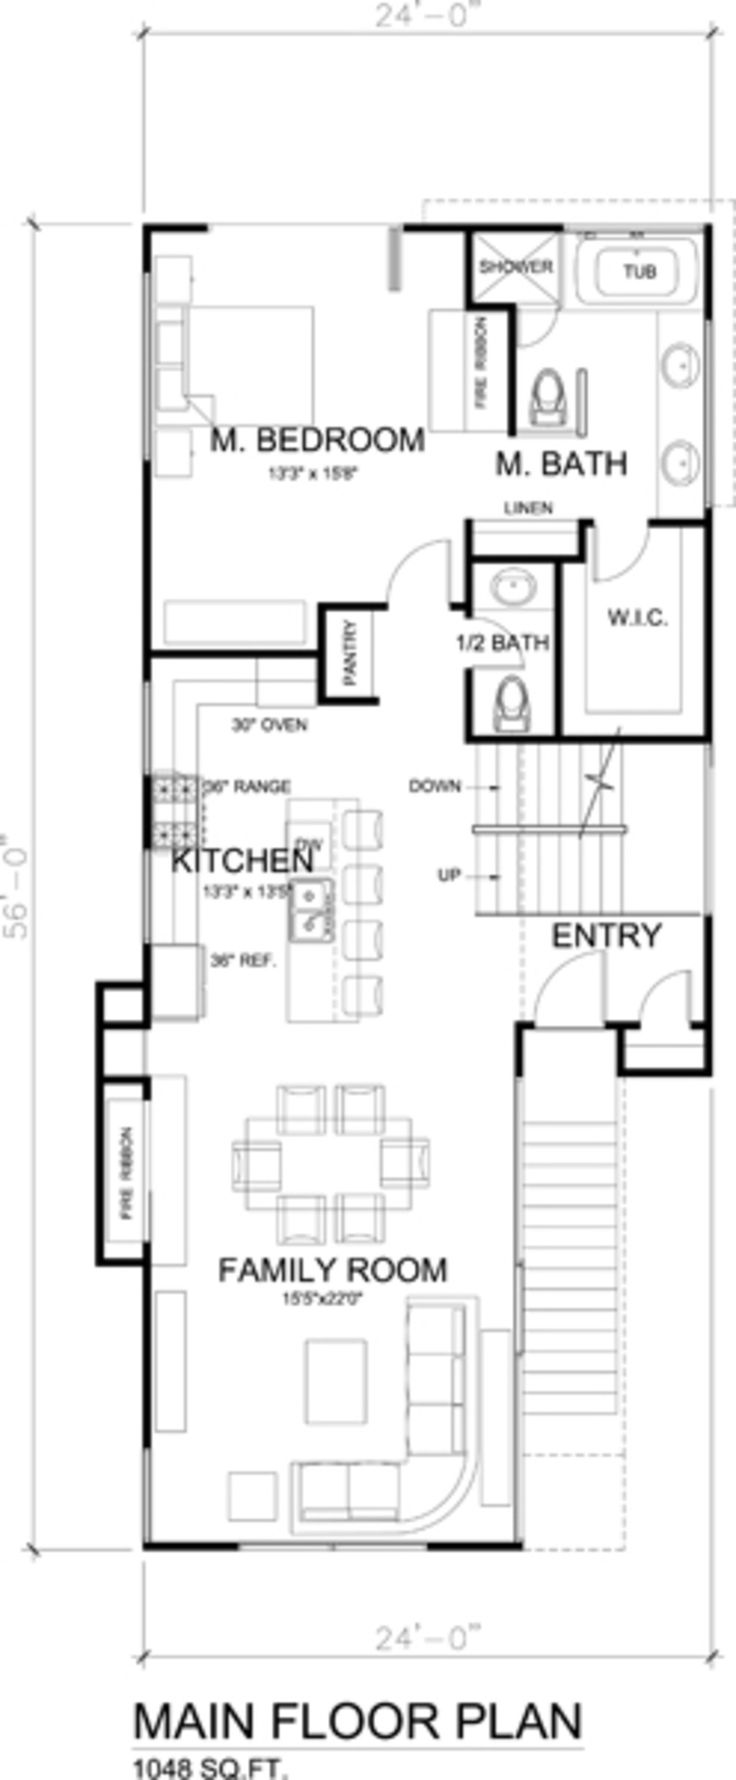 39 best plans images on pinterest architecture projects and main floor only loose 1 2 bath turn closet sideways